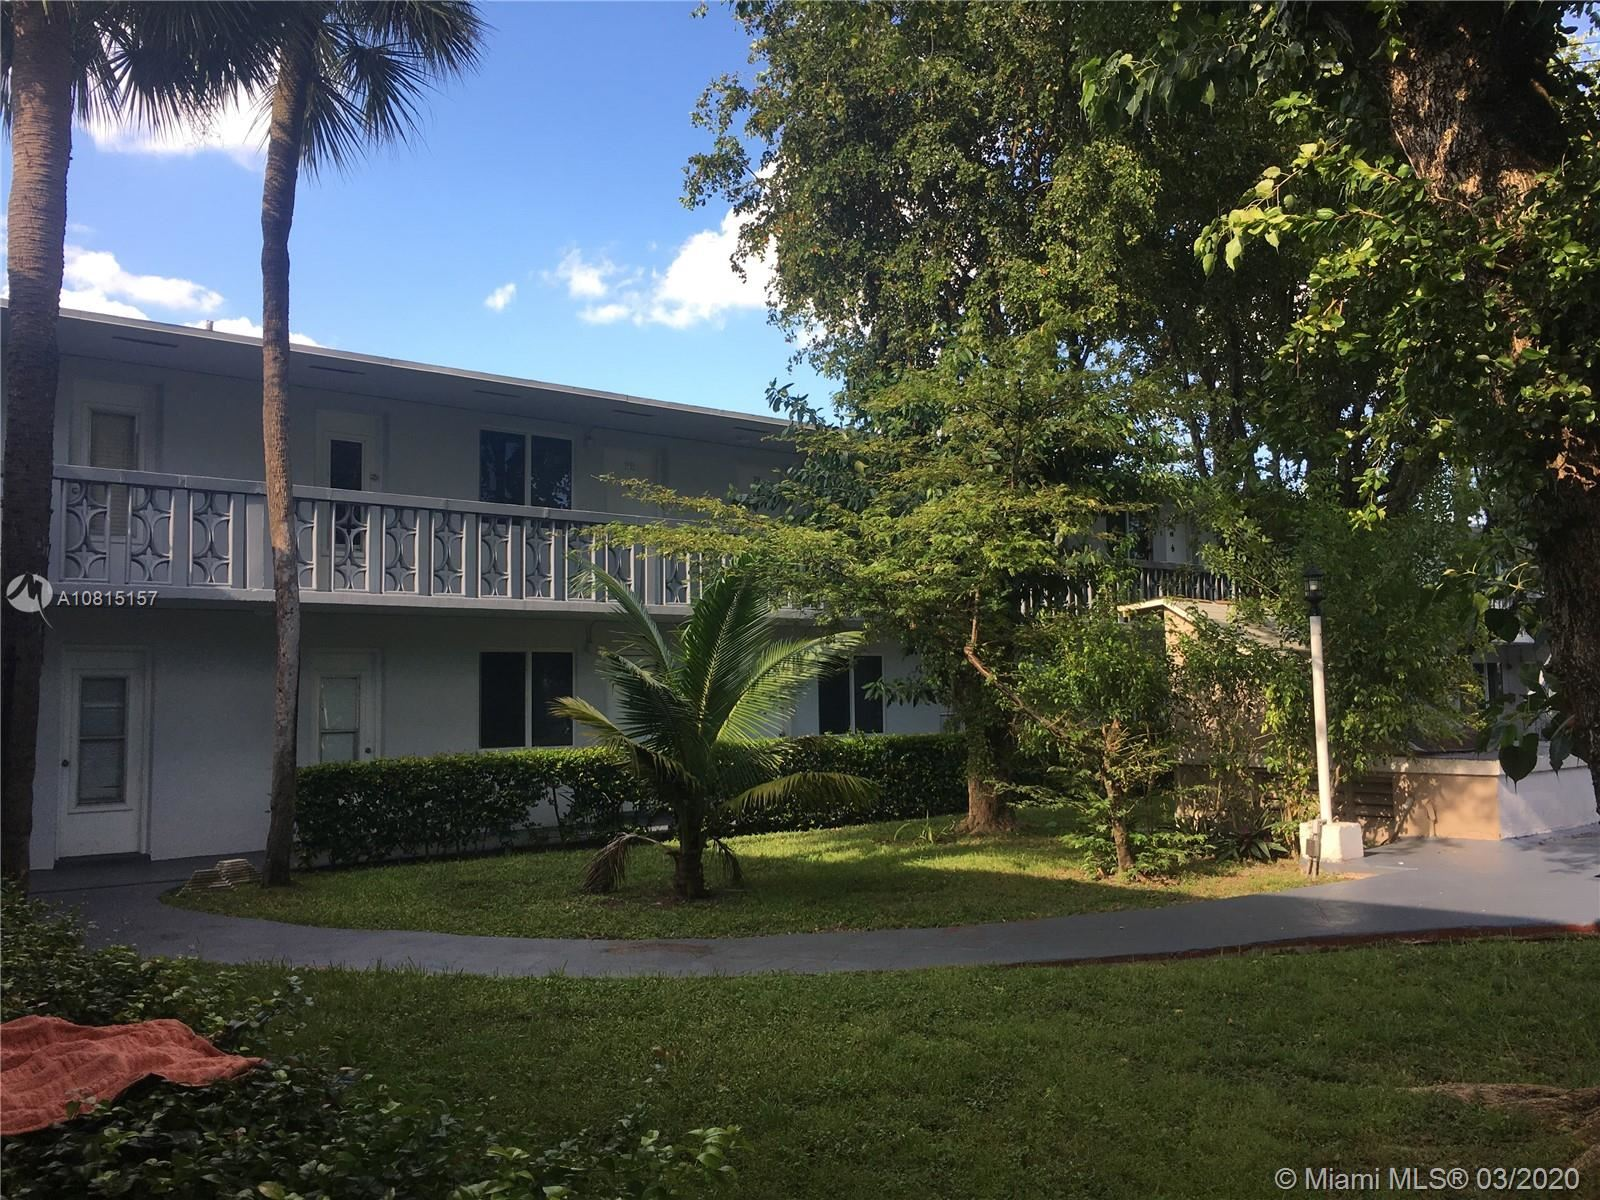 890 NW 45th Ave #32, Miami, FL 33126 - #: A10815157